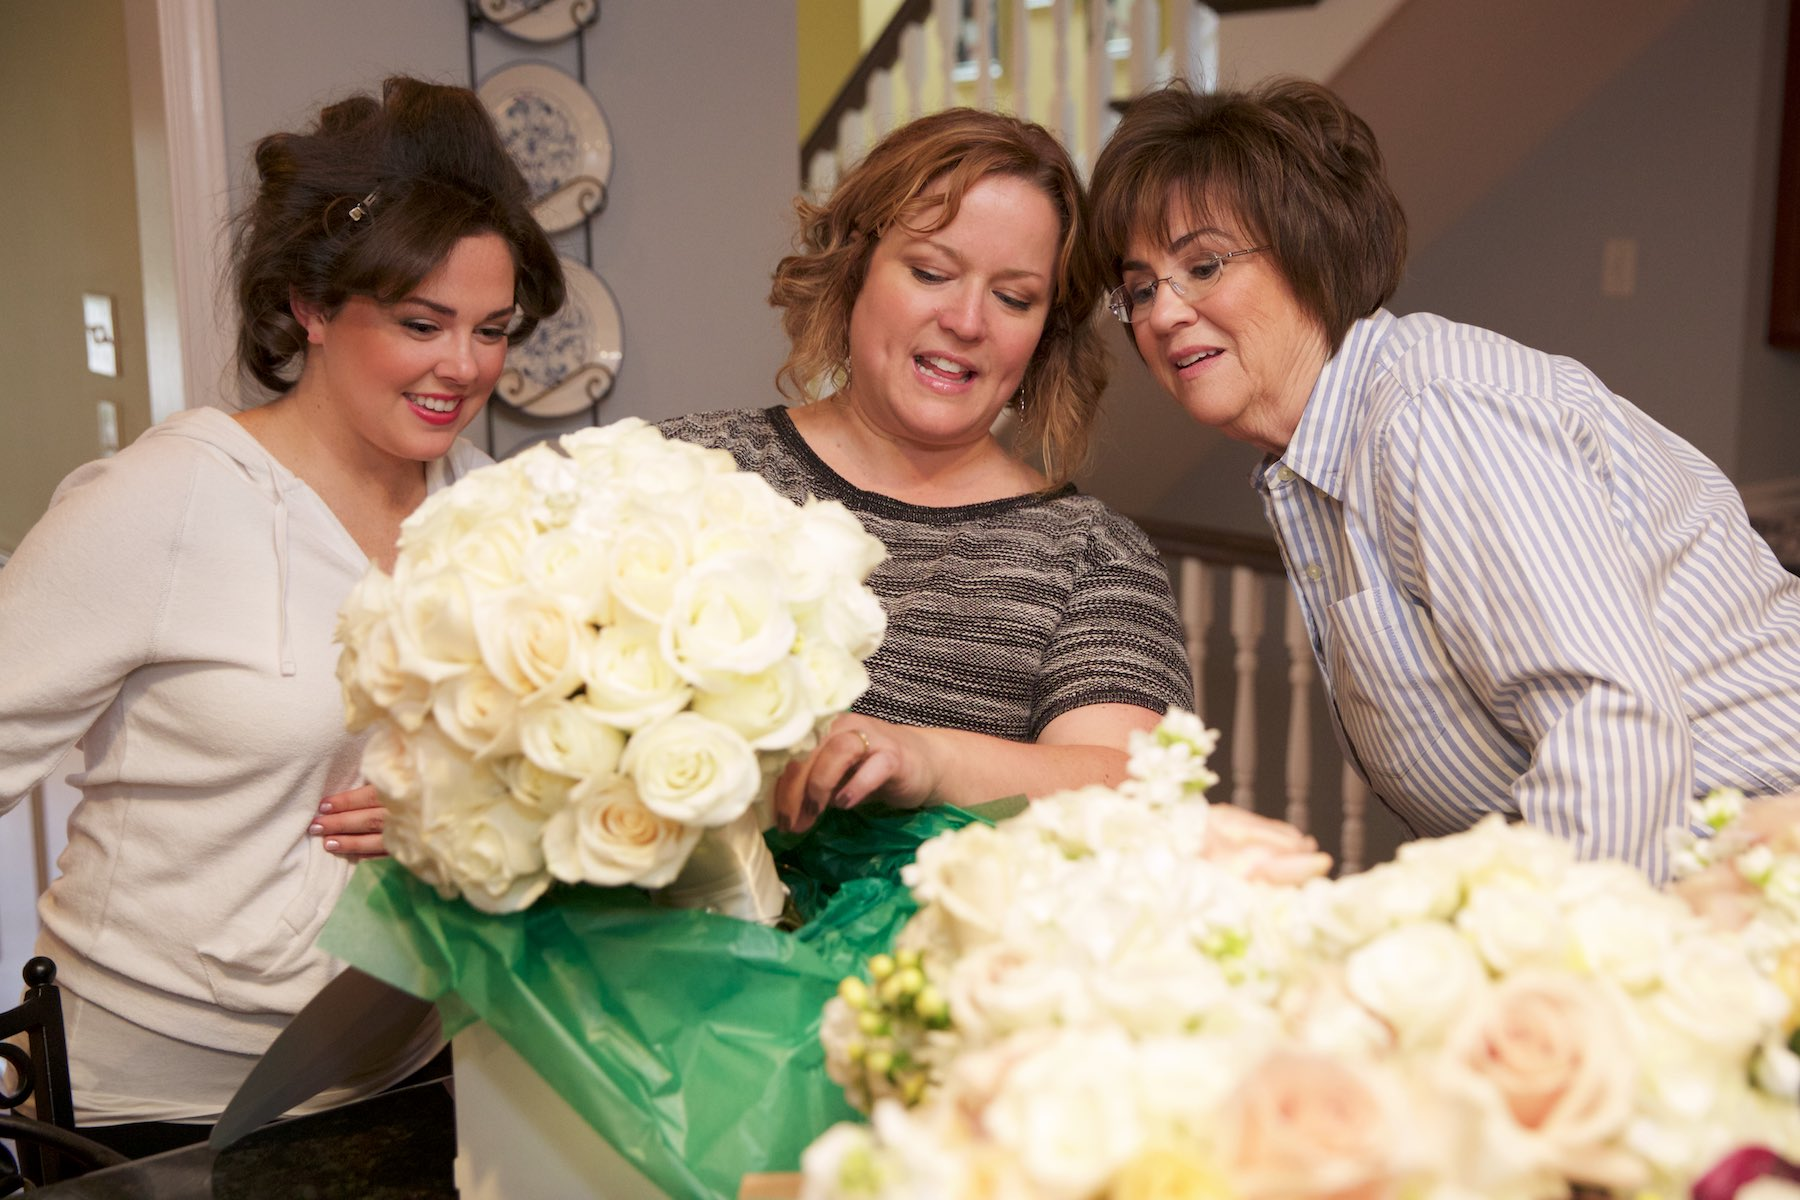 Elizabeth and her mother check out bouquets with Sass & Class Flowers florist at their home. Wedding photography by Steve & Tiffany Warmowski